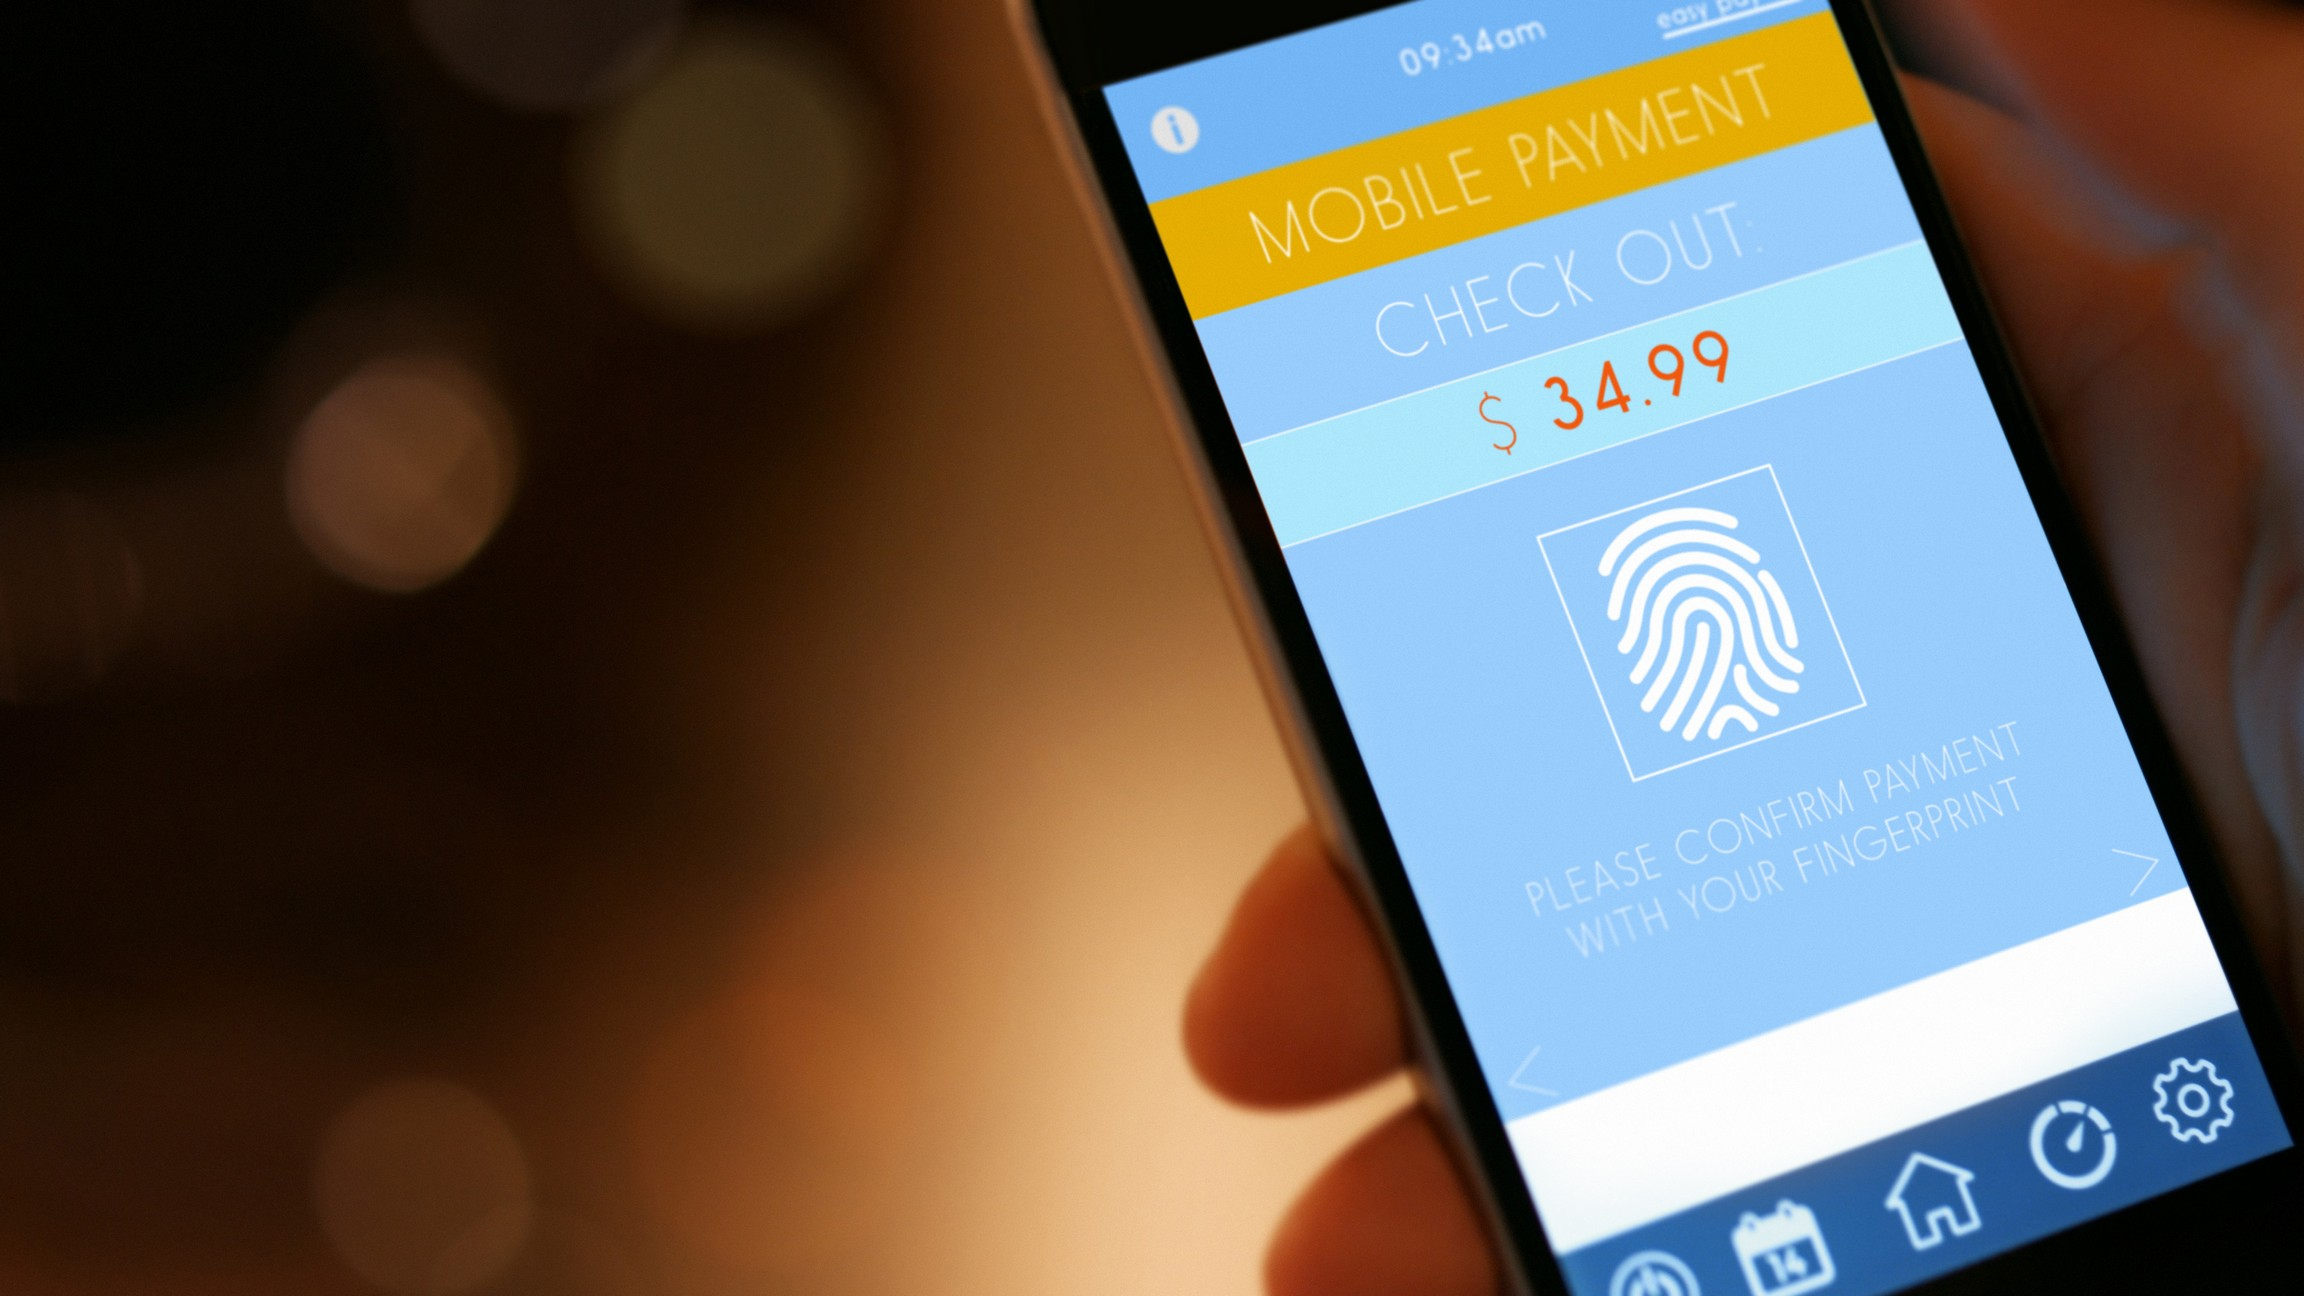 Mobile Payments in the San Francisco Bay Area